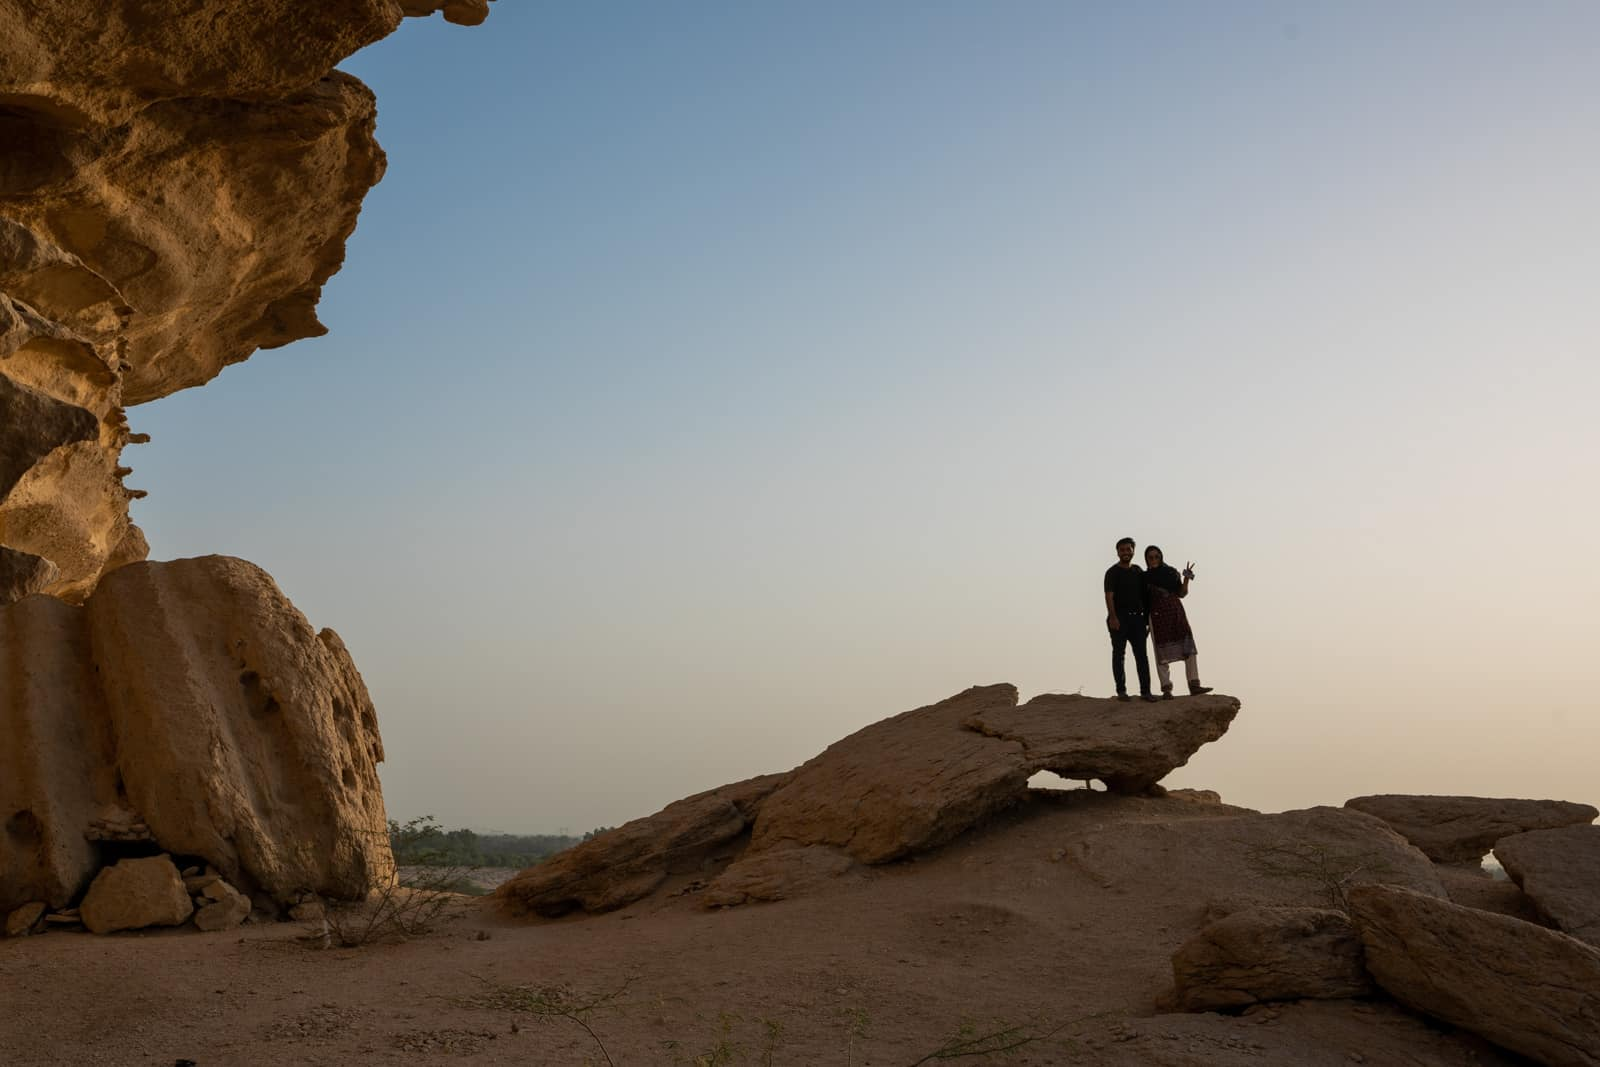 Silhouettes of Alex with a local traveler friend in Sindh, Pakistan